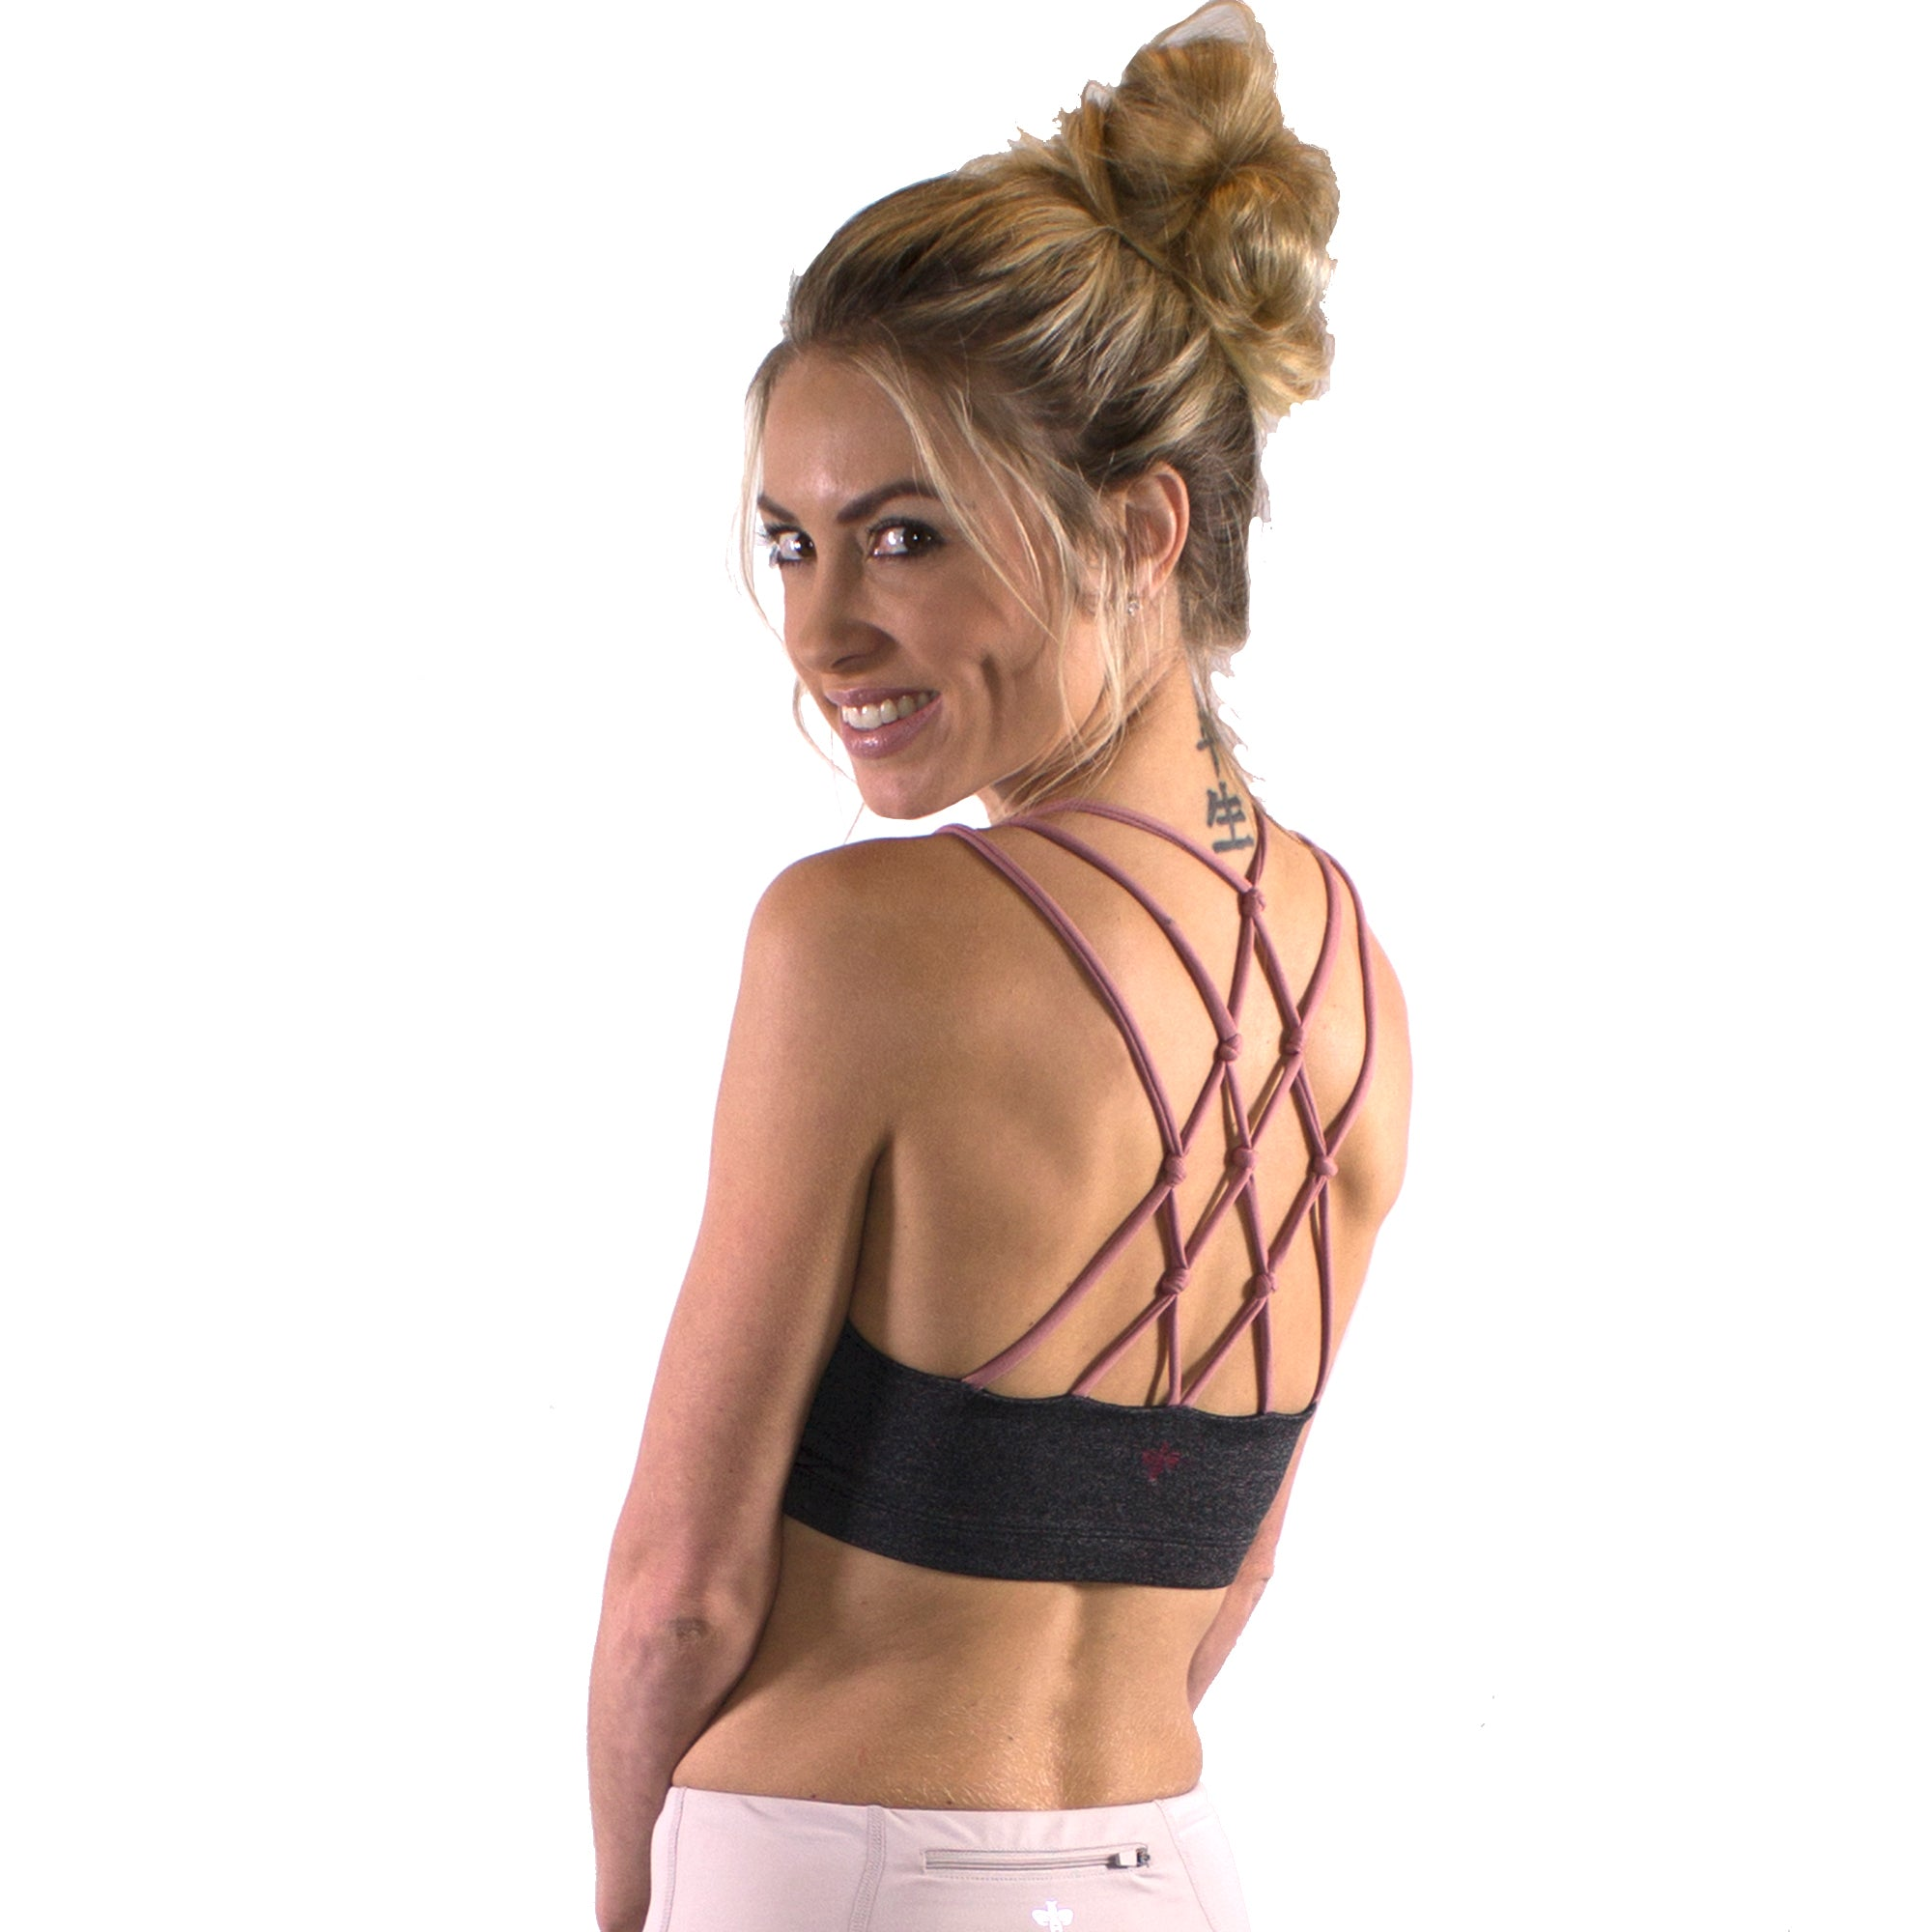 bfree braided back bra top